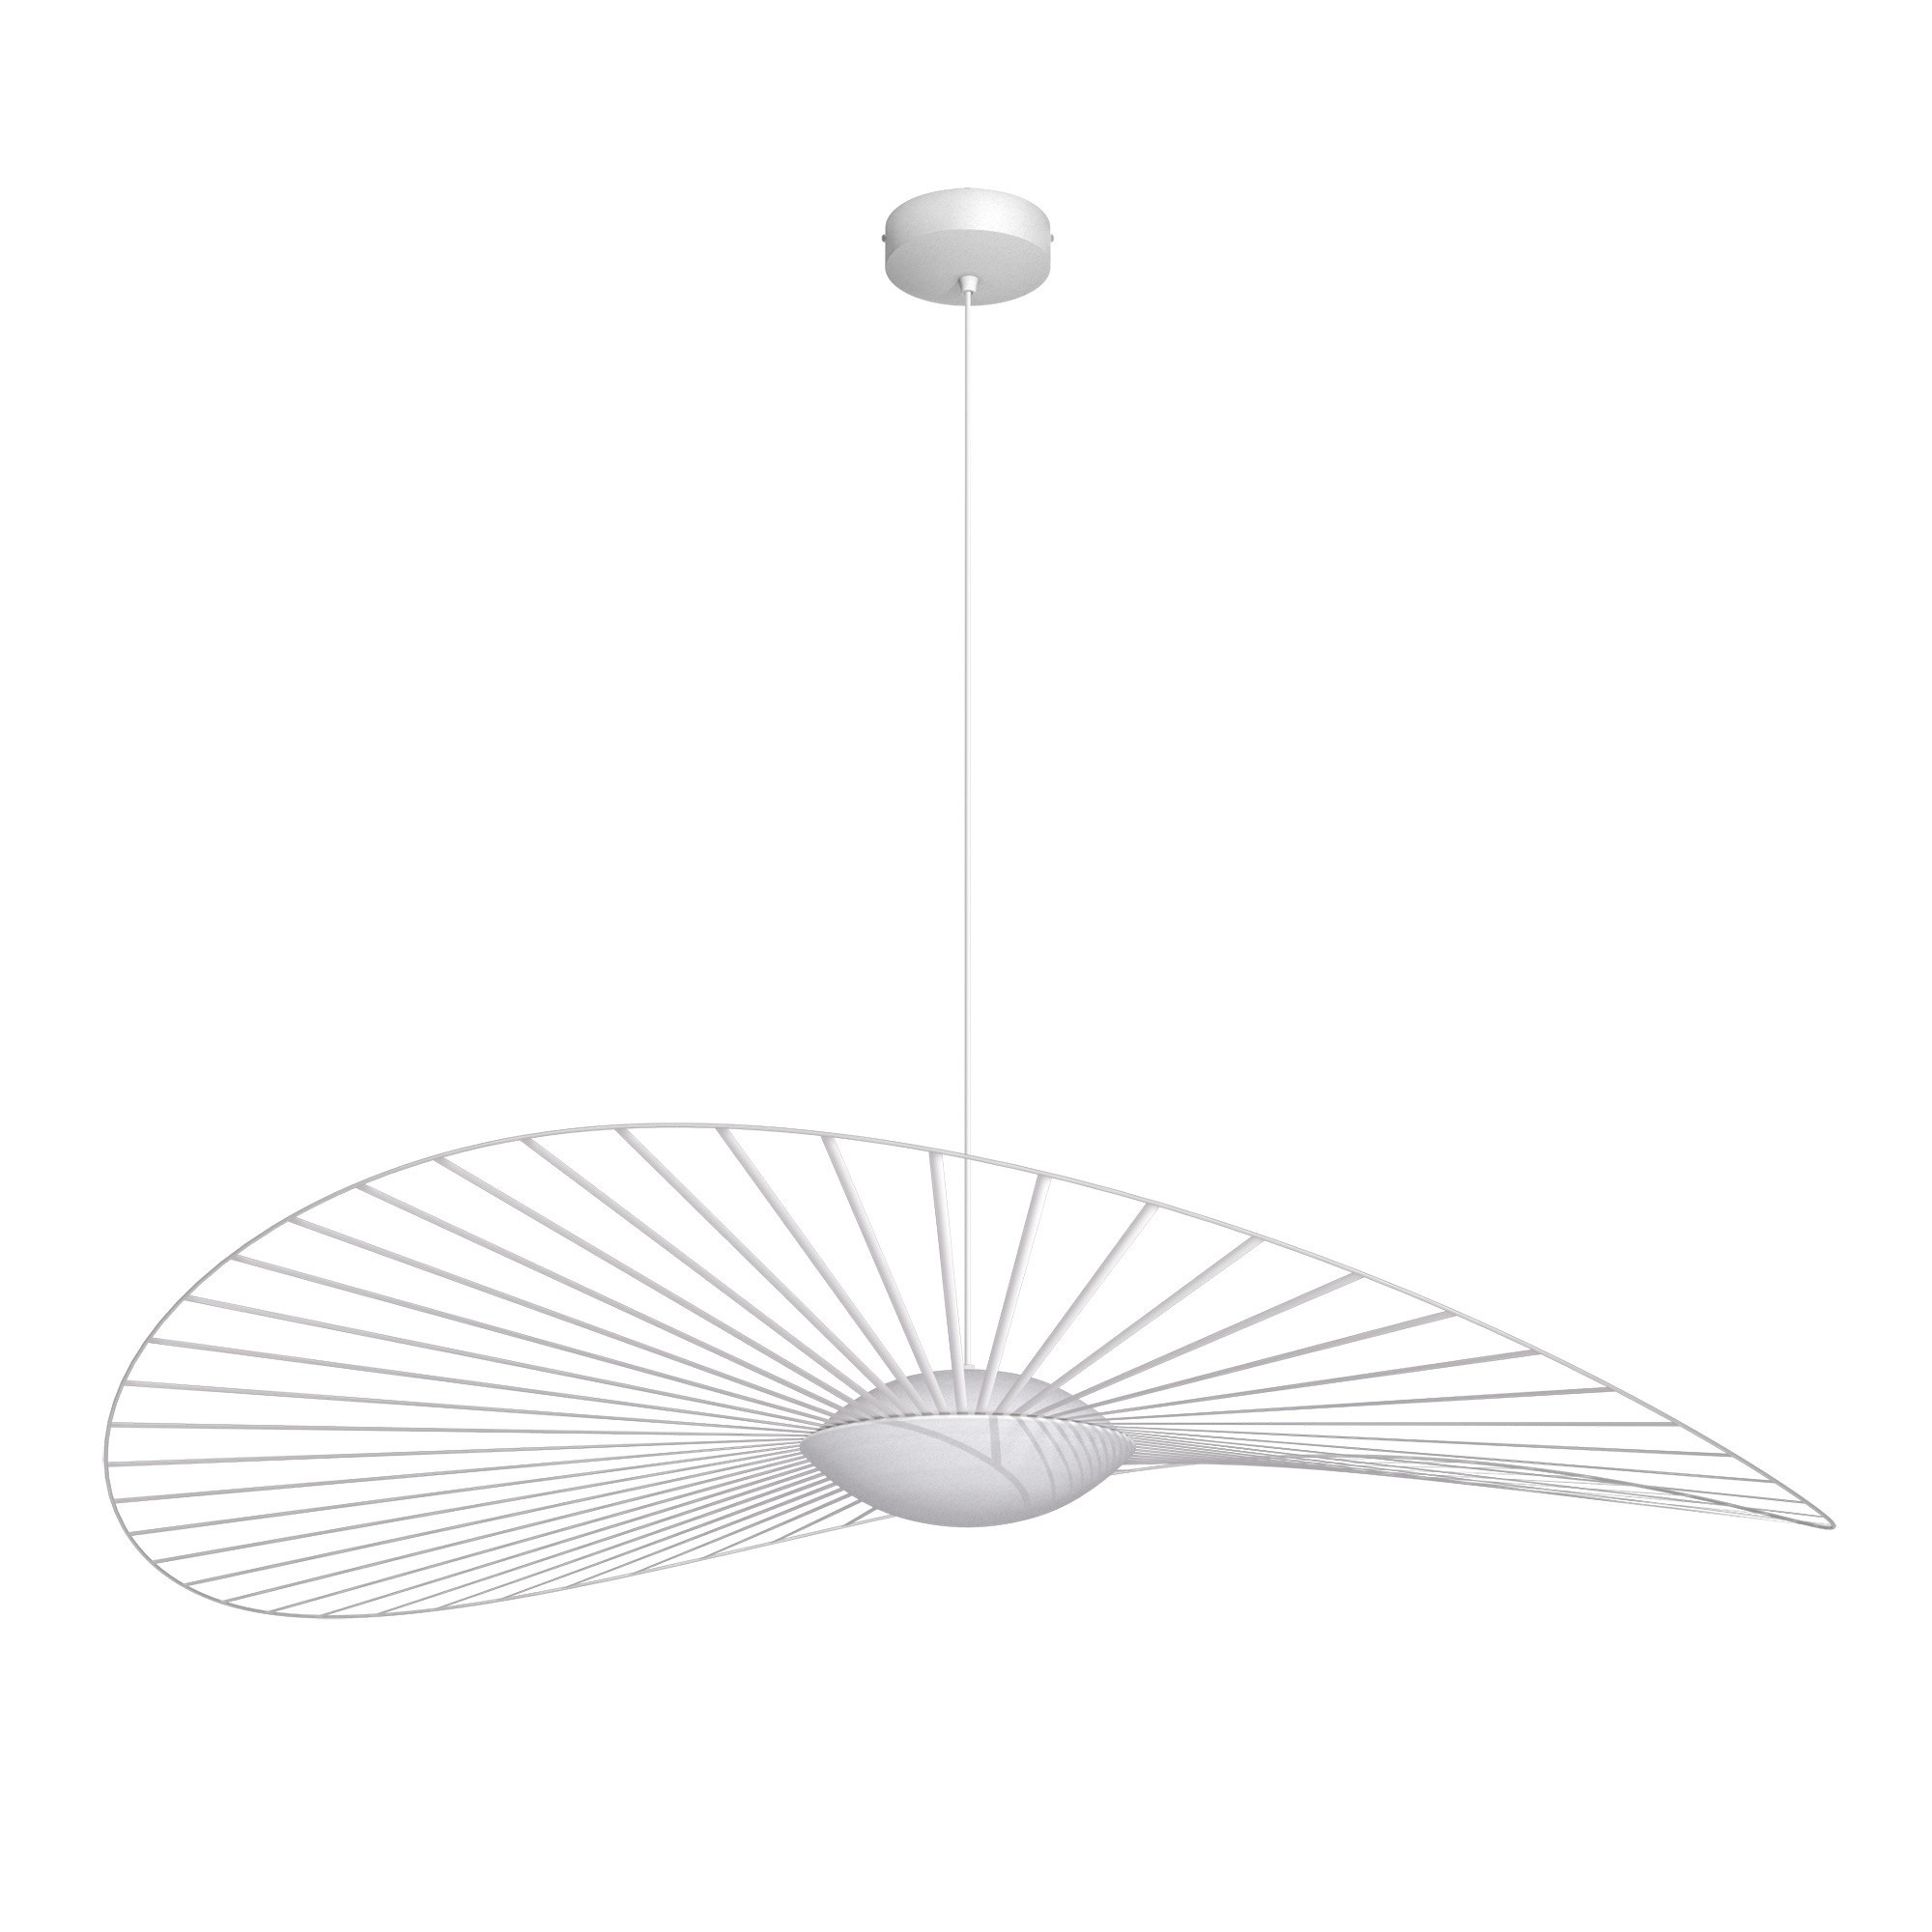 vertigo nova led suspension lamp o140cm